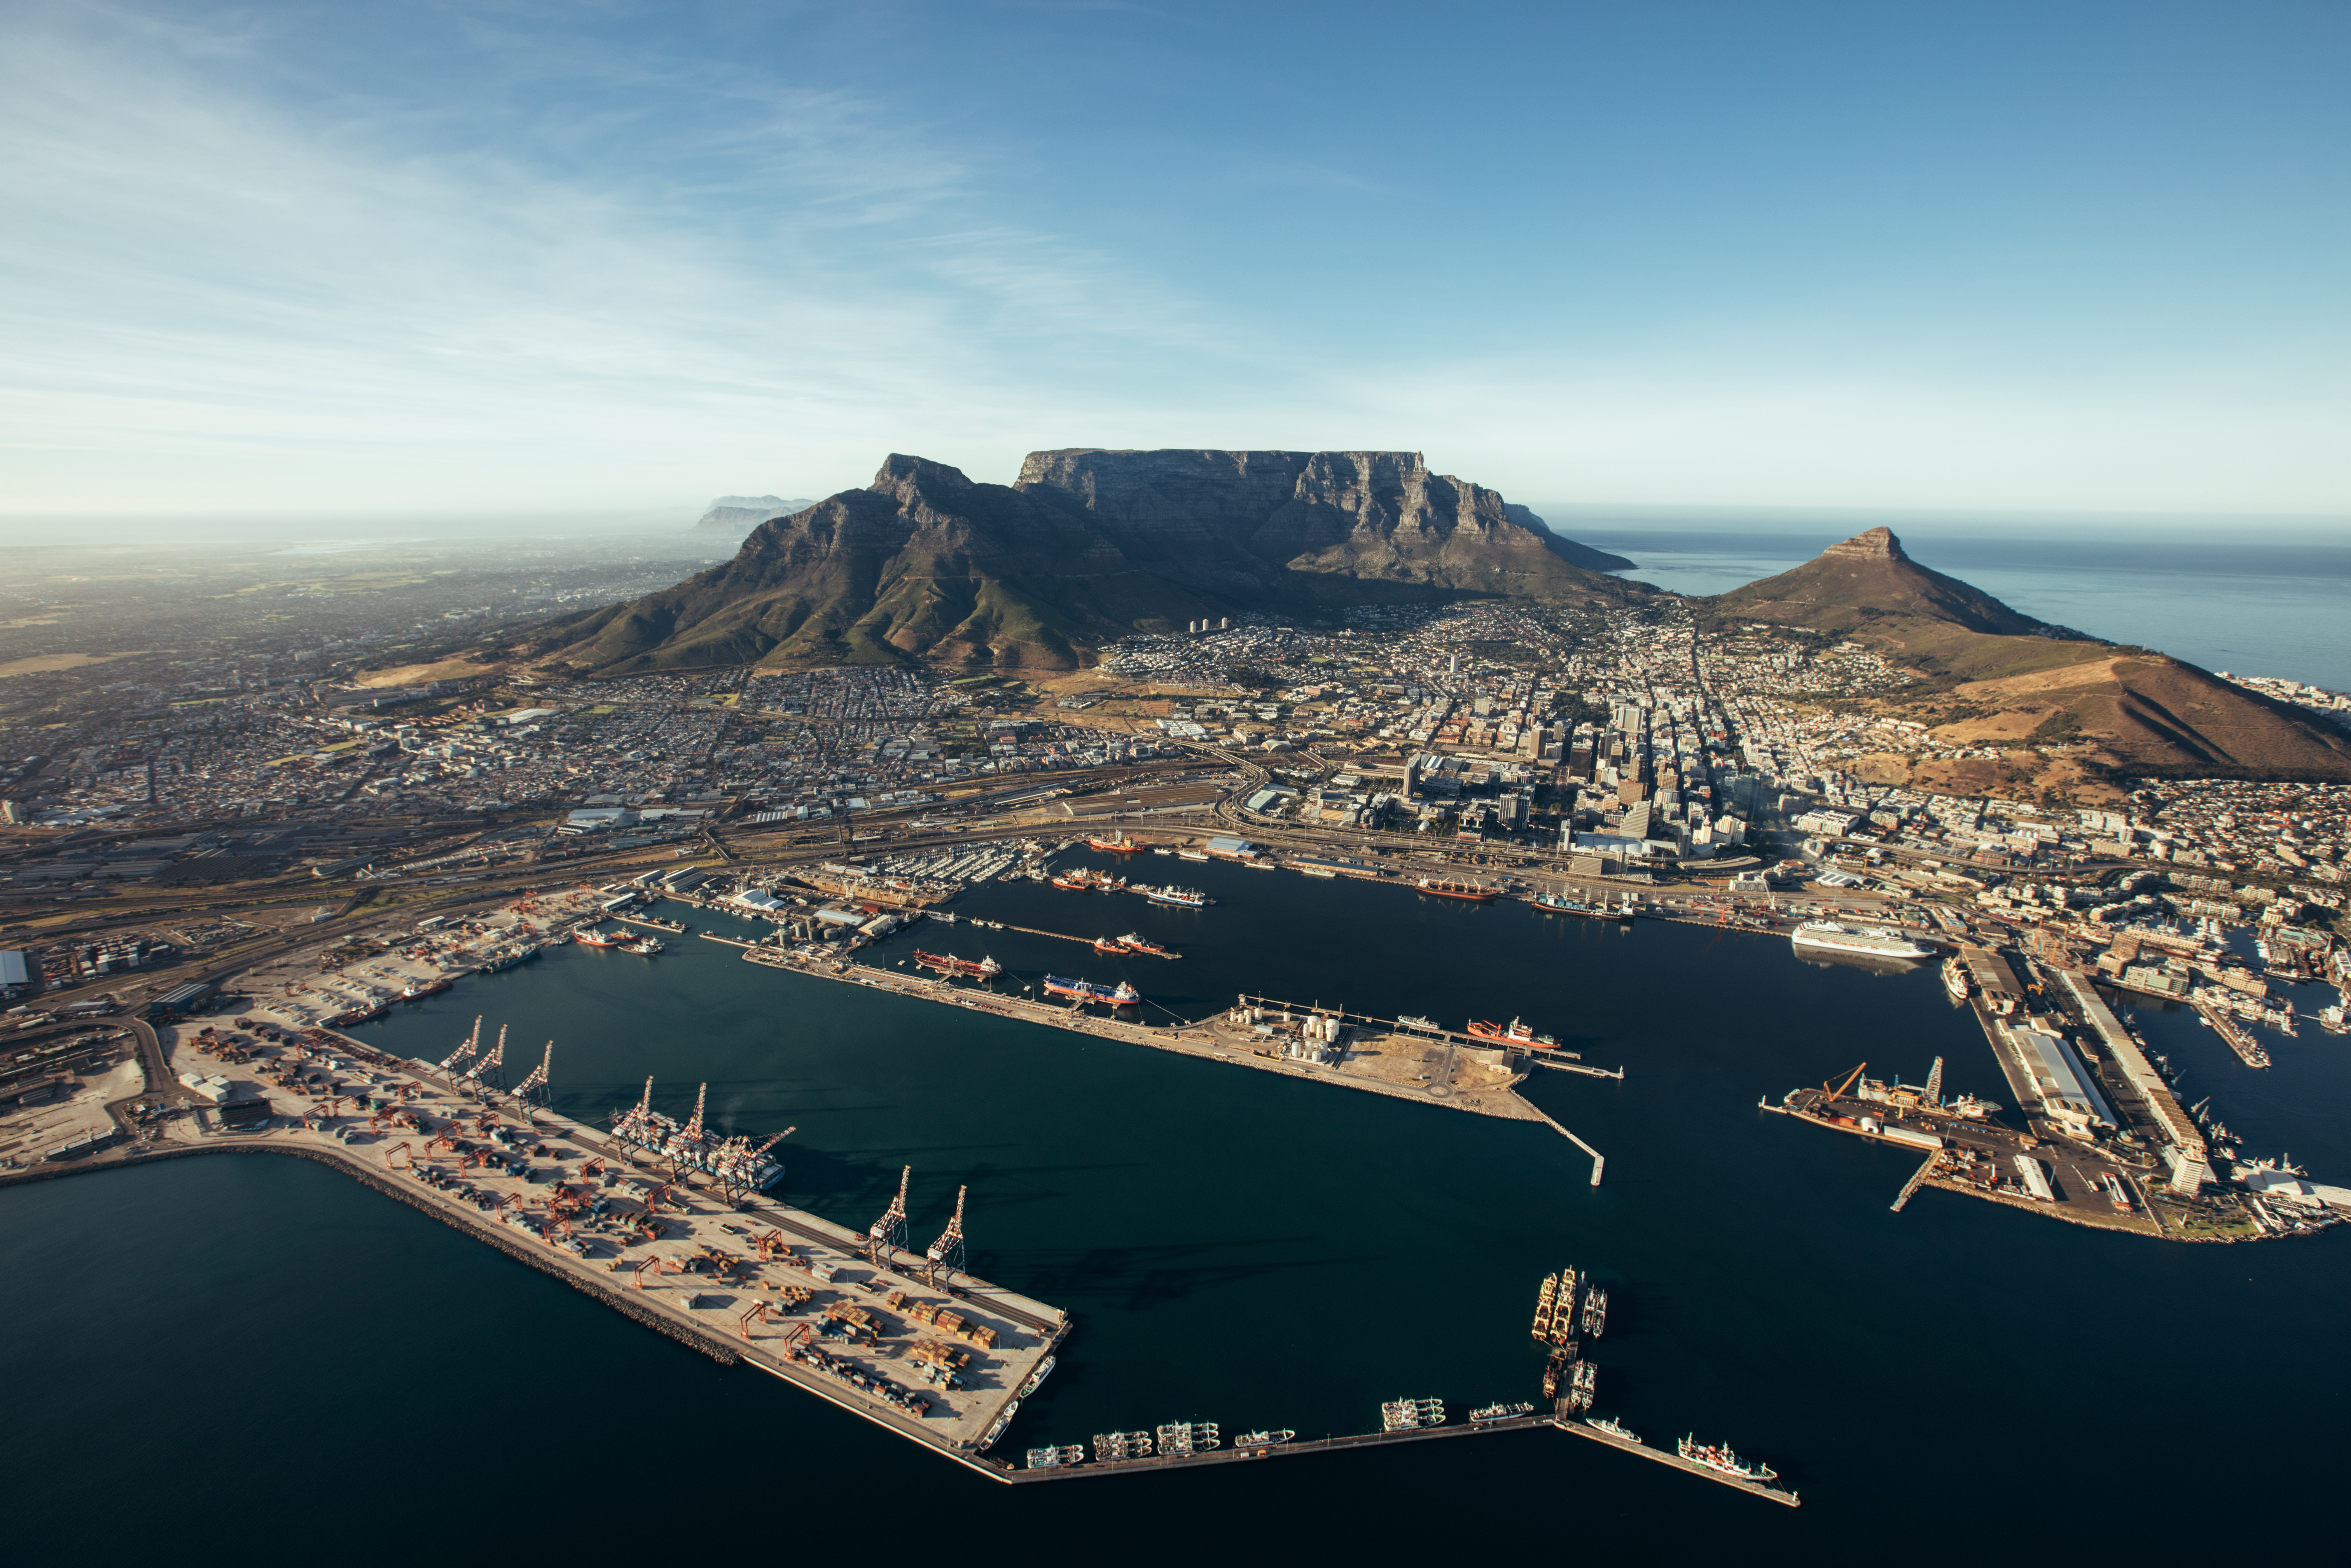 Aerial view of entrance of the port of cape town. Commercial docks of cape town harbour